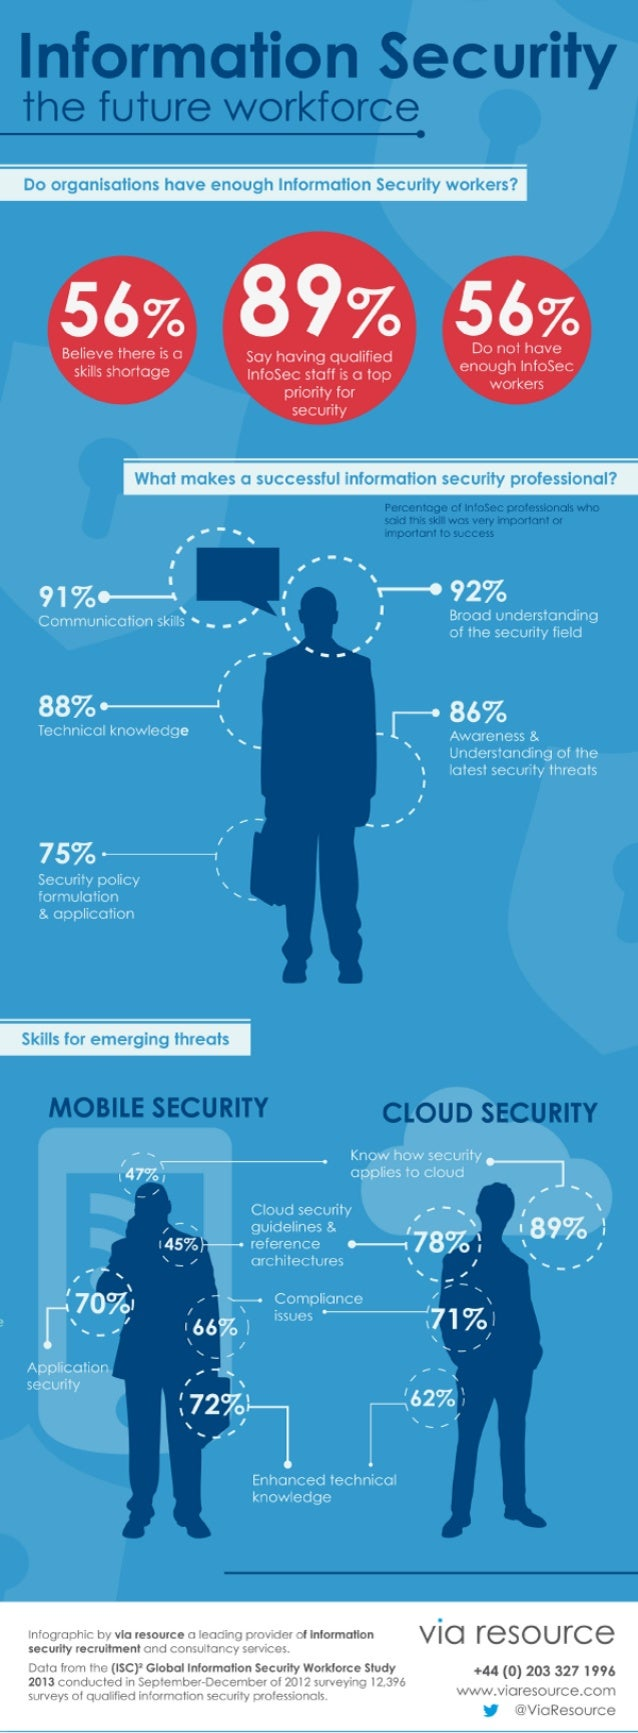 TOP SKILLS FOR THE FUTURE INFOSEC WORKFORCE